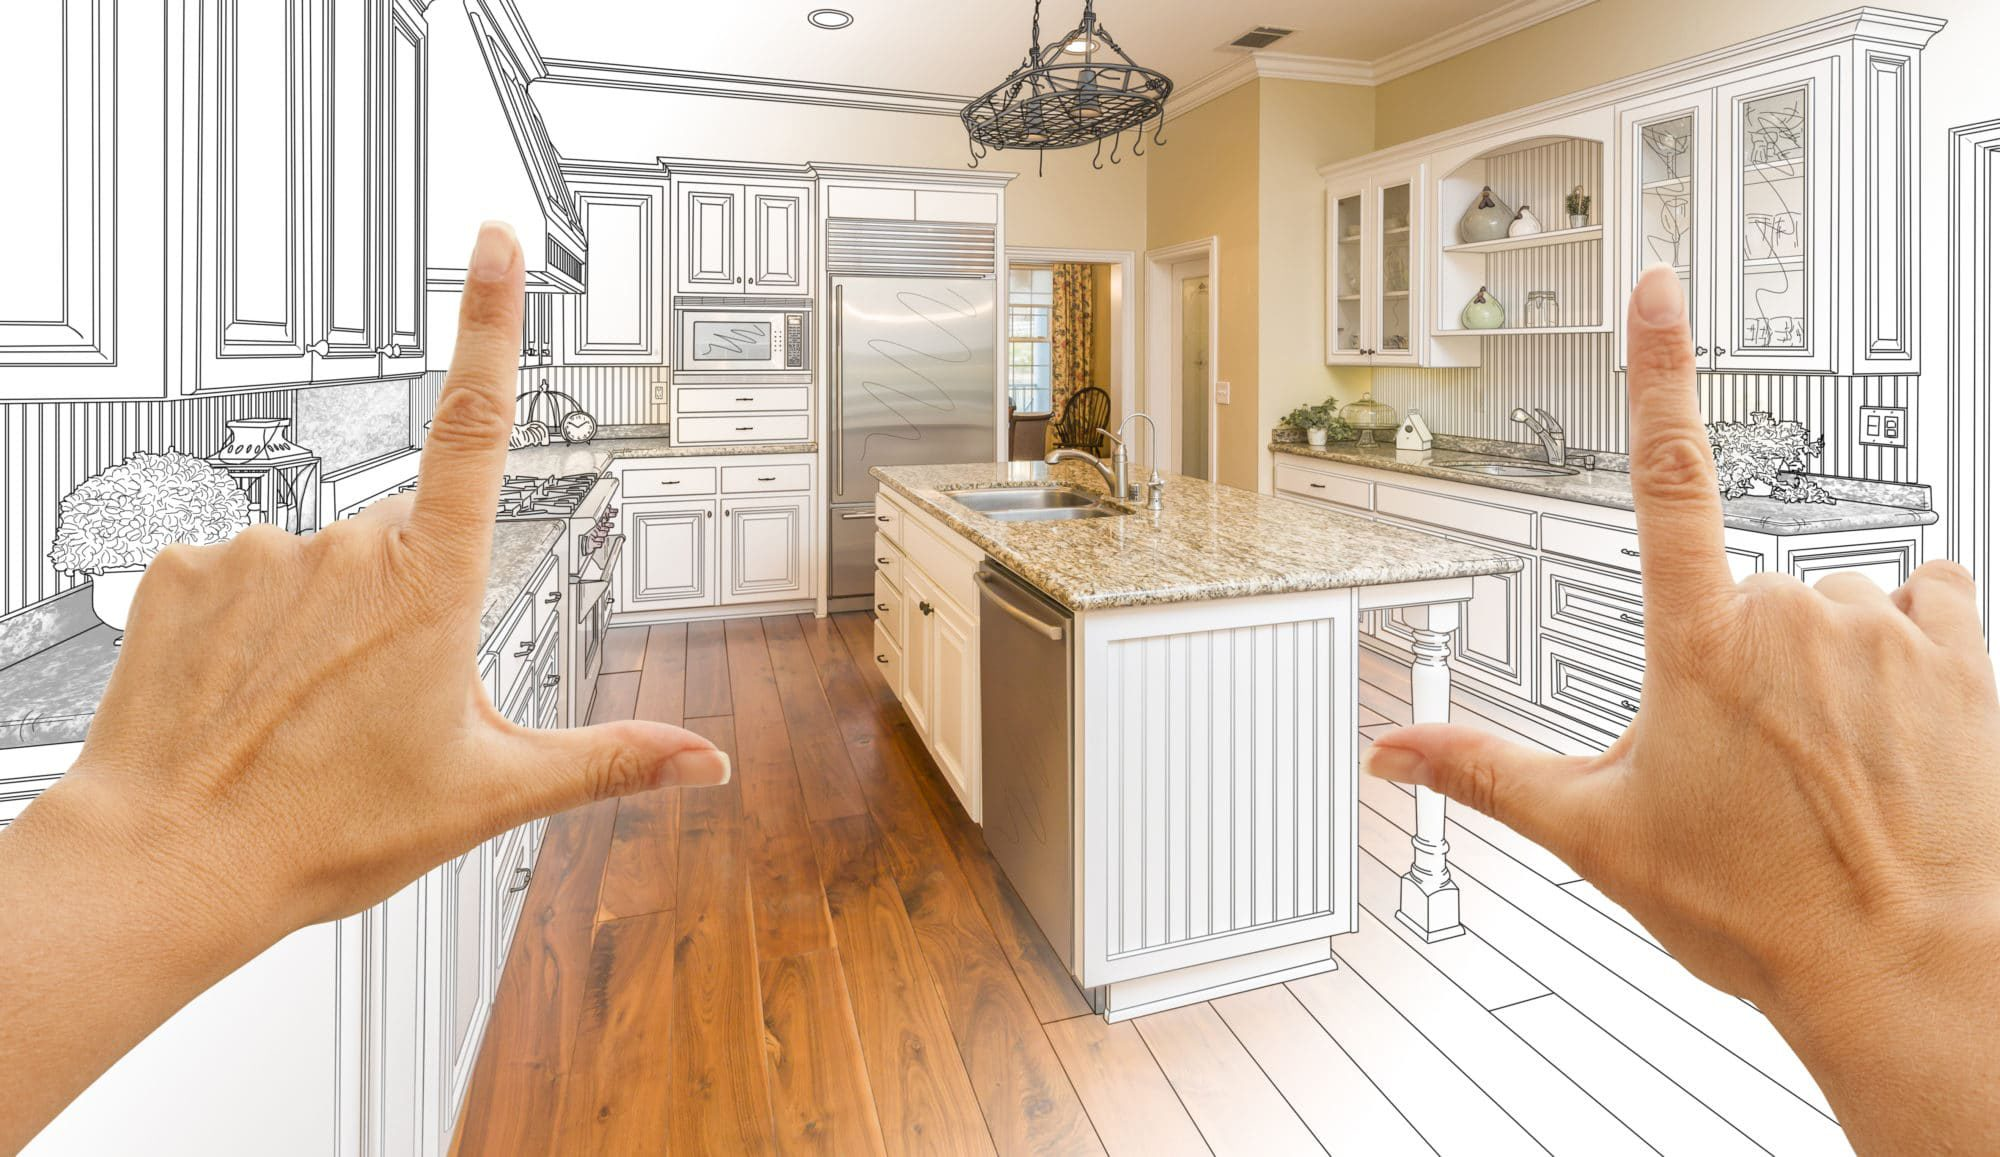 Our Remodeling Process- What It's Like Working with Us